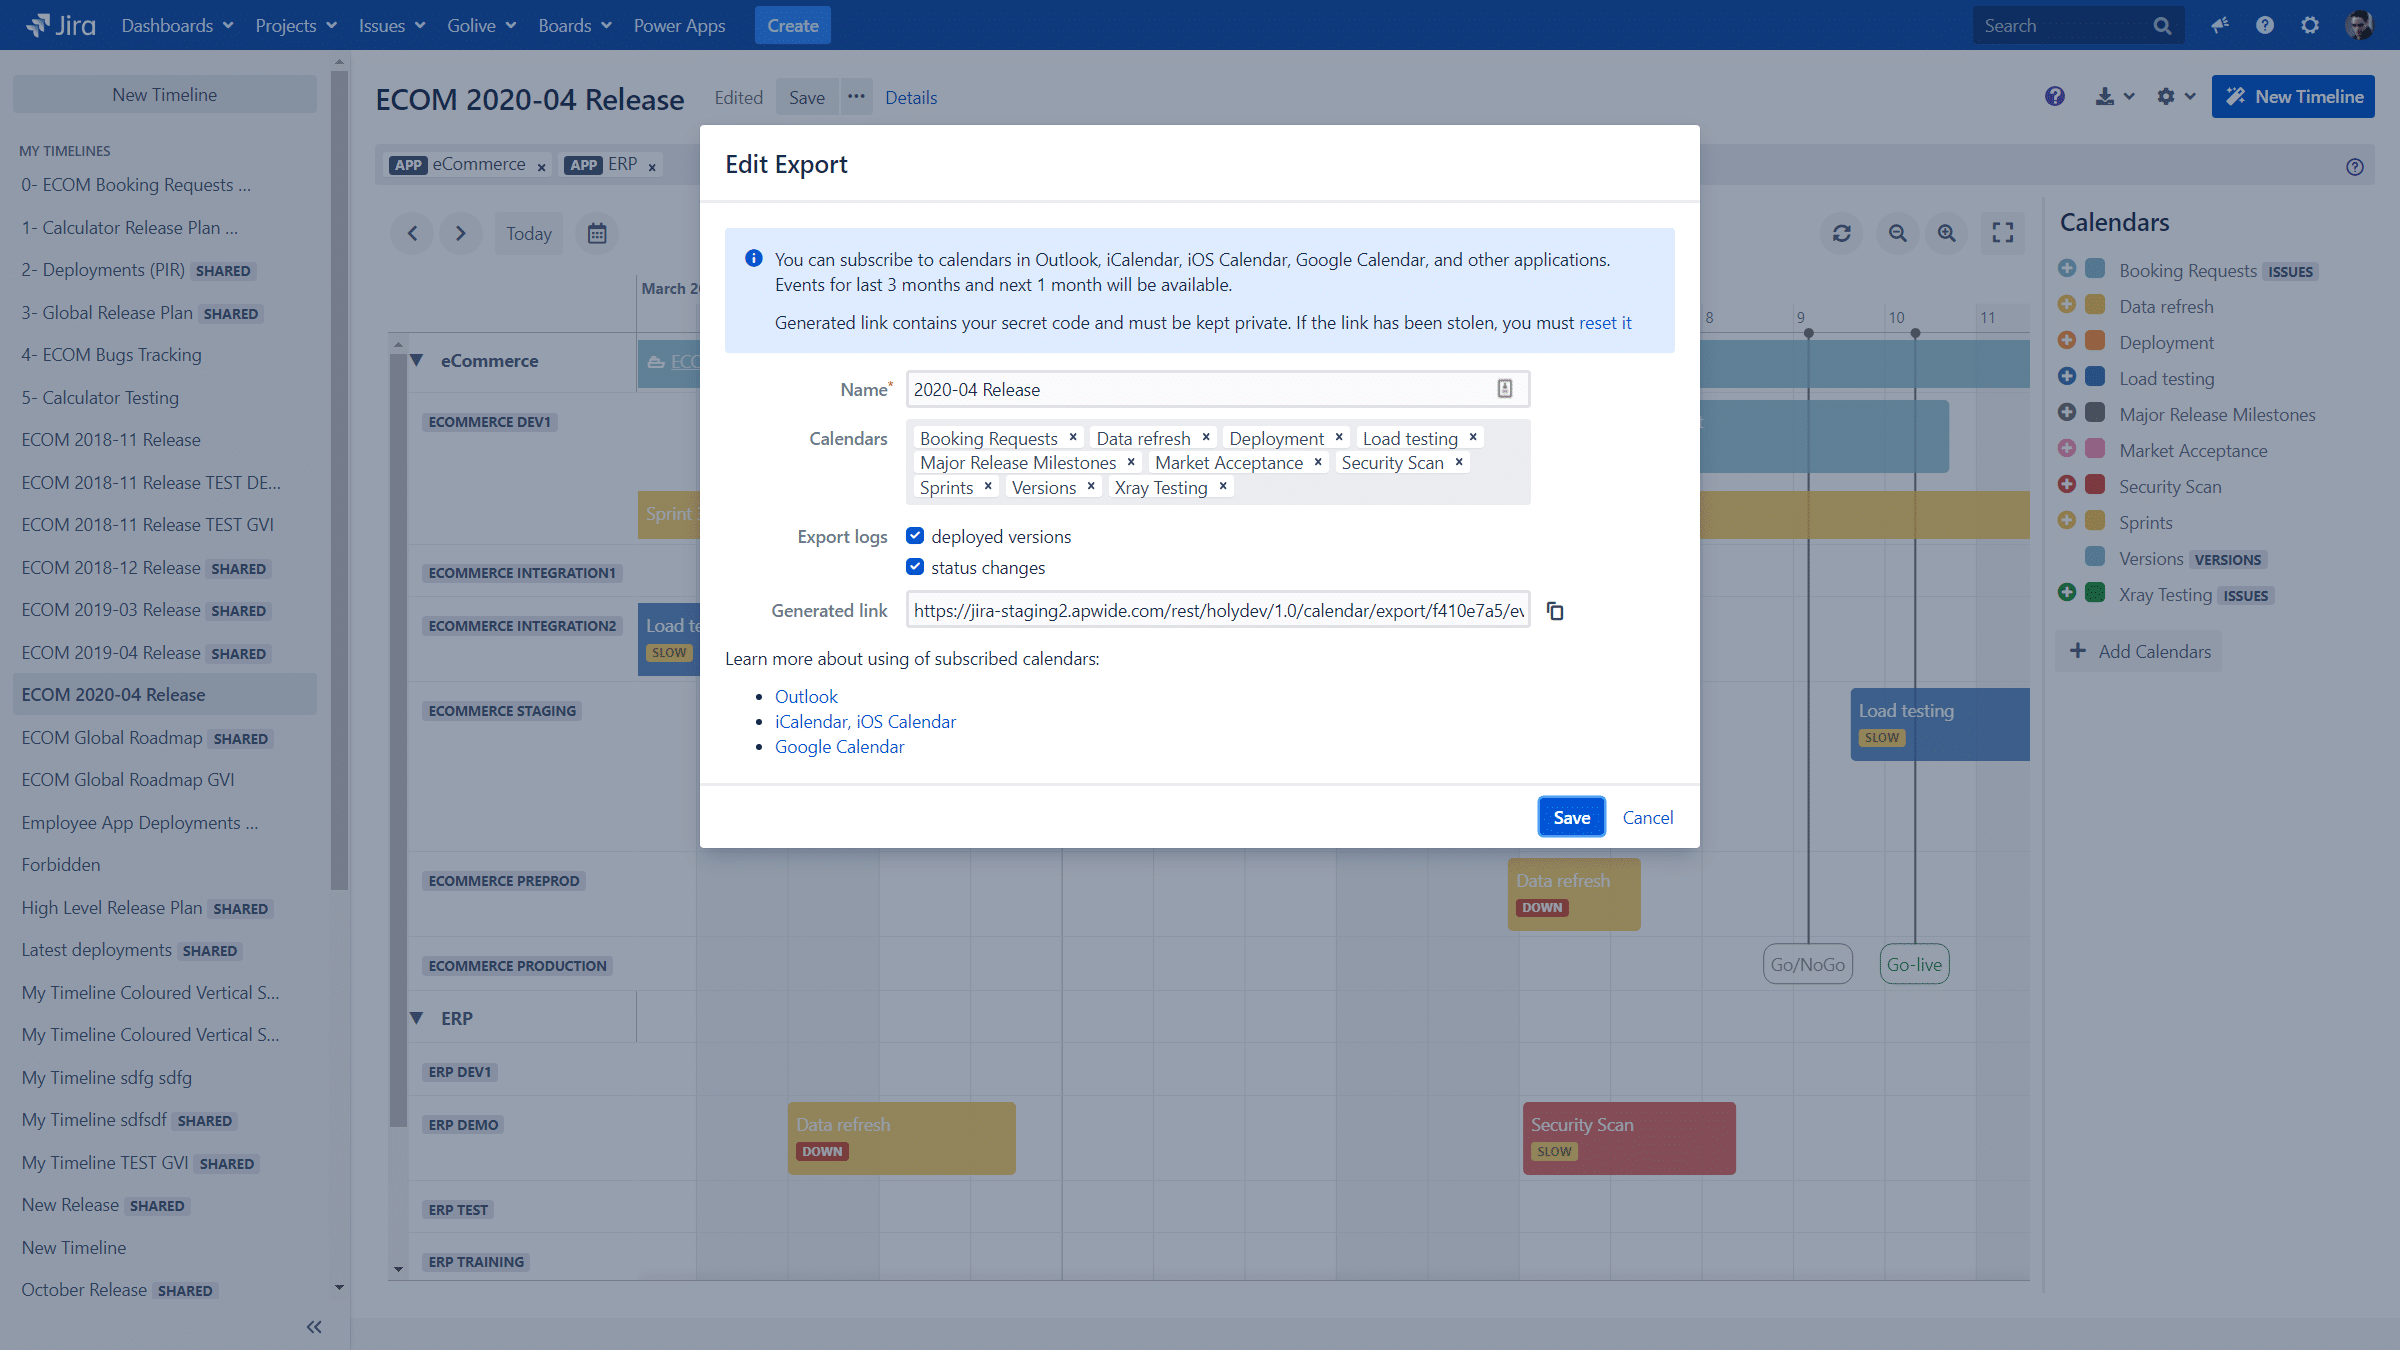 Jira Environment Timelines export in iCal format with Golive